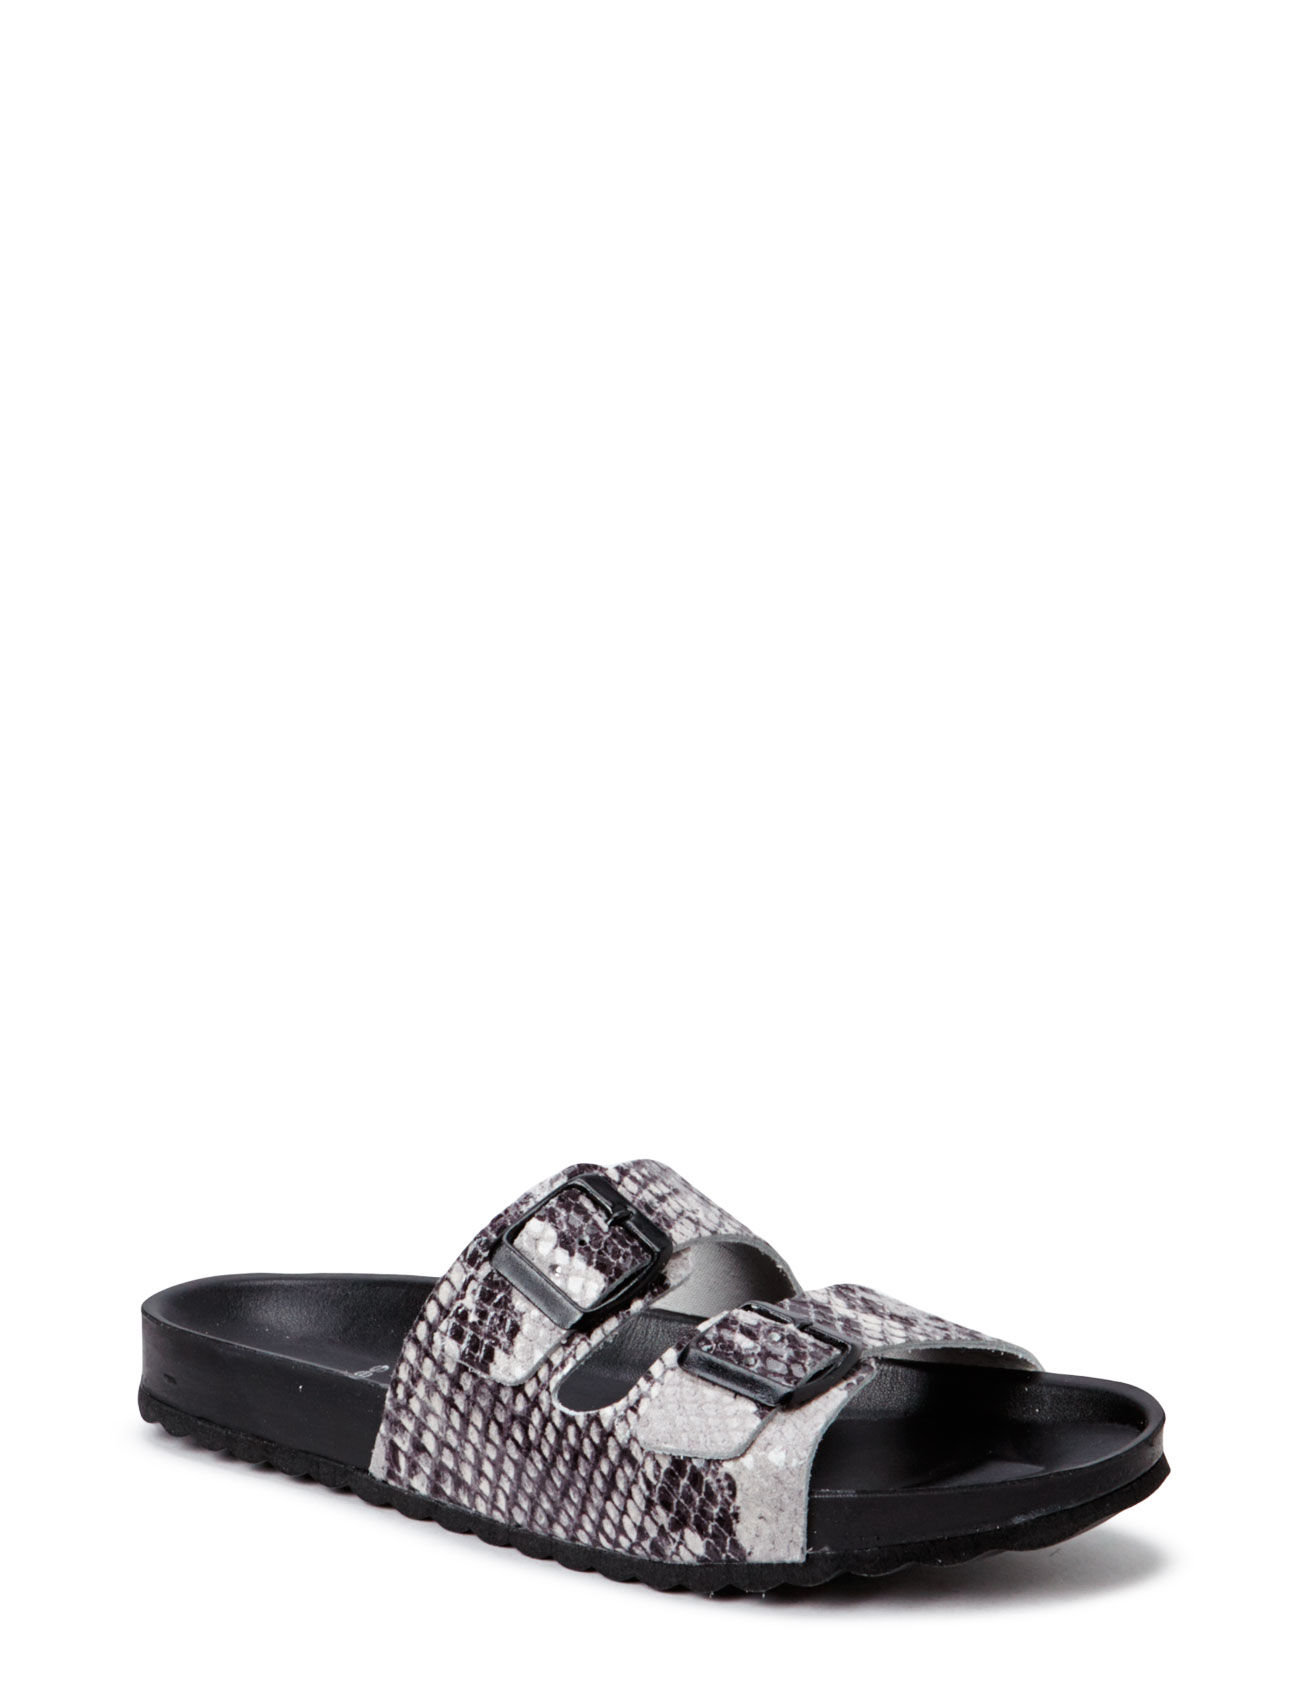 Pscasey Leather Sandal Snake Black